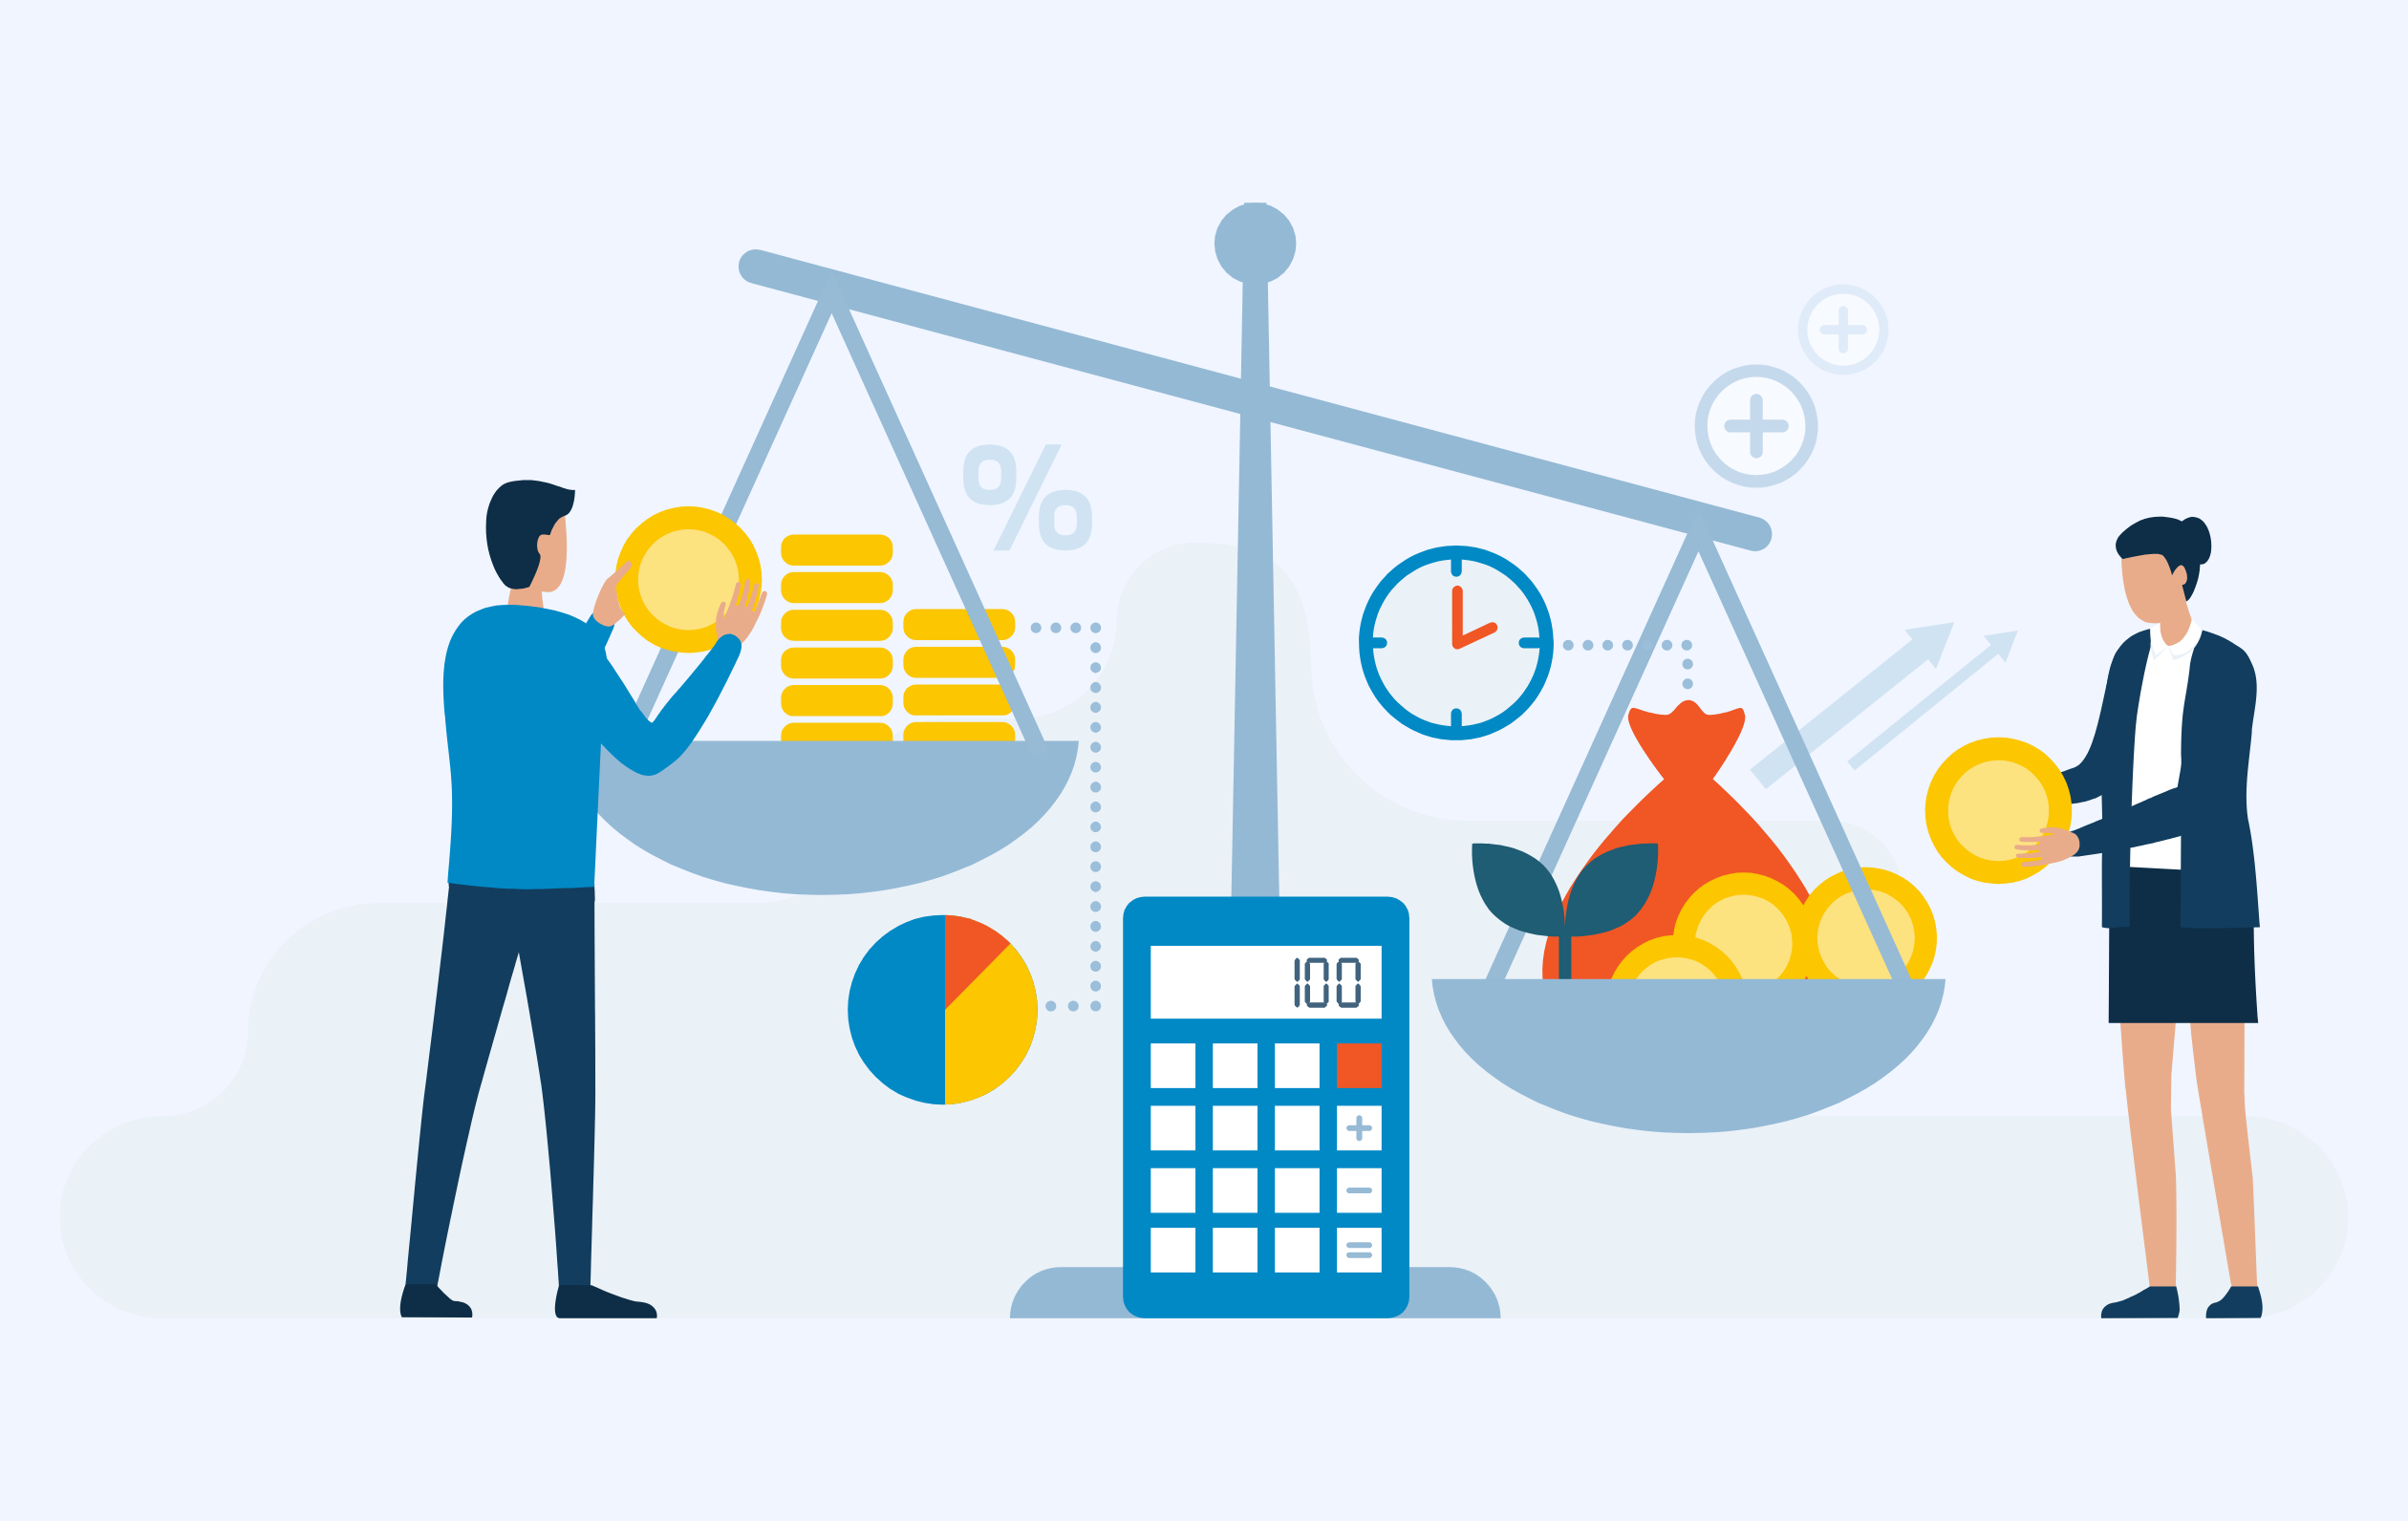 Illustration of people weighting coins on a scale